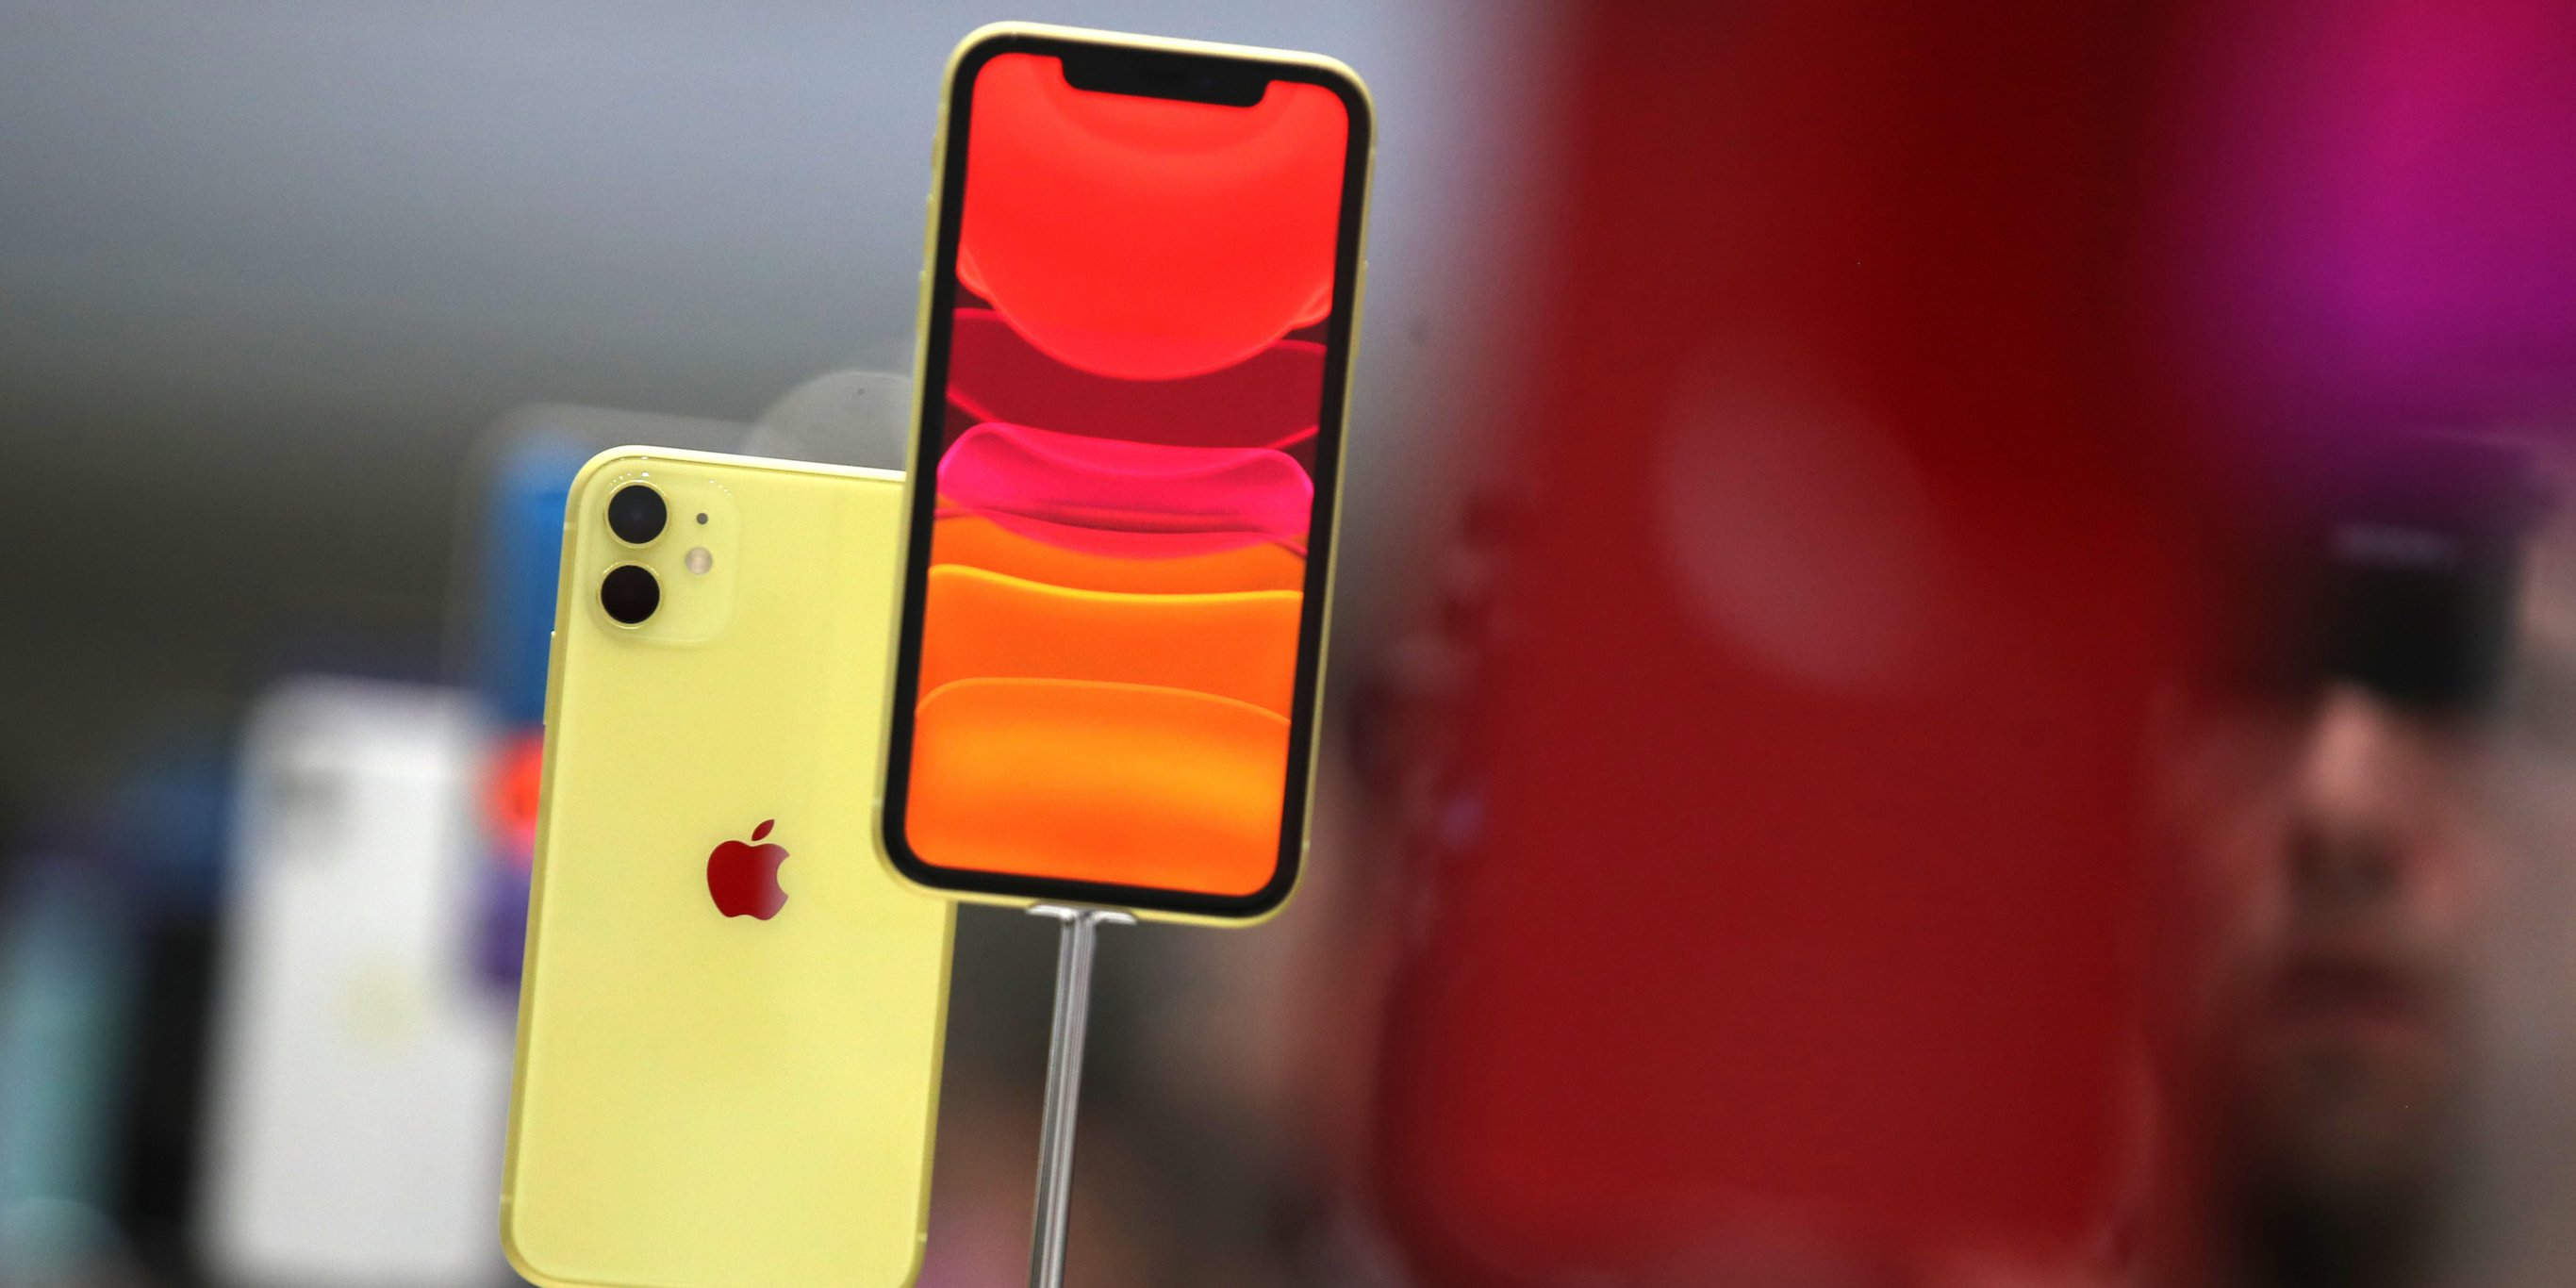 Apple said it made improvements in the iPhone 11 to help keep its performance high even as the battery gets old (AAPL)